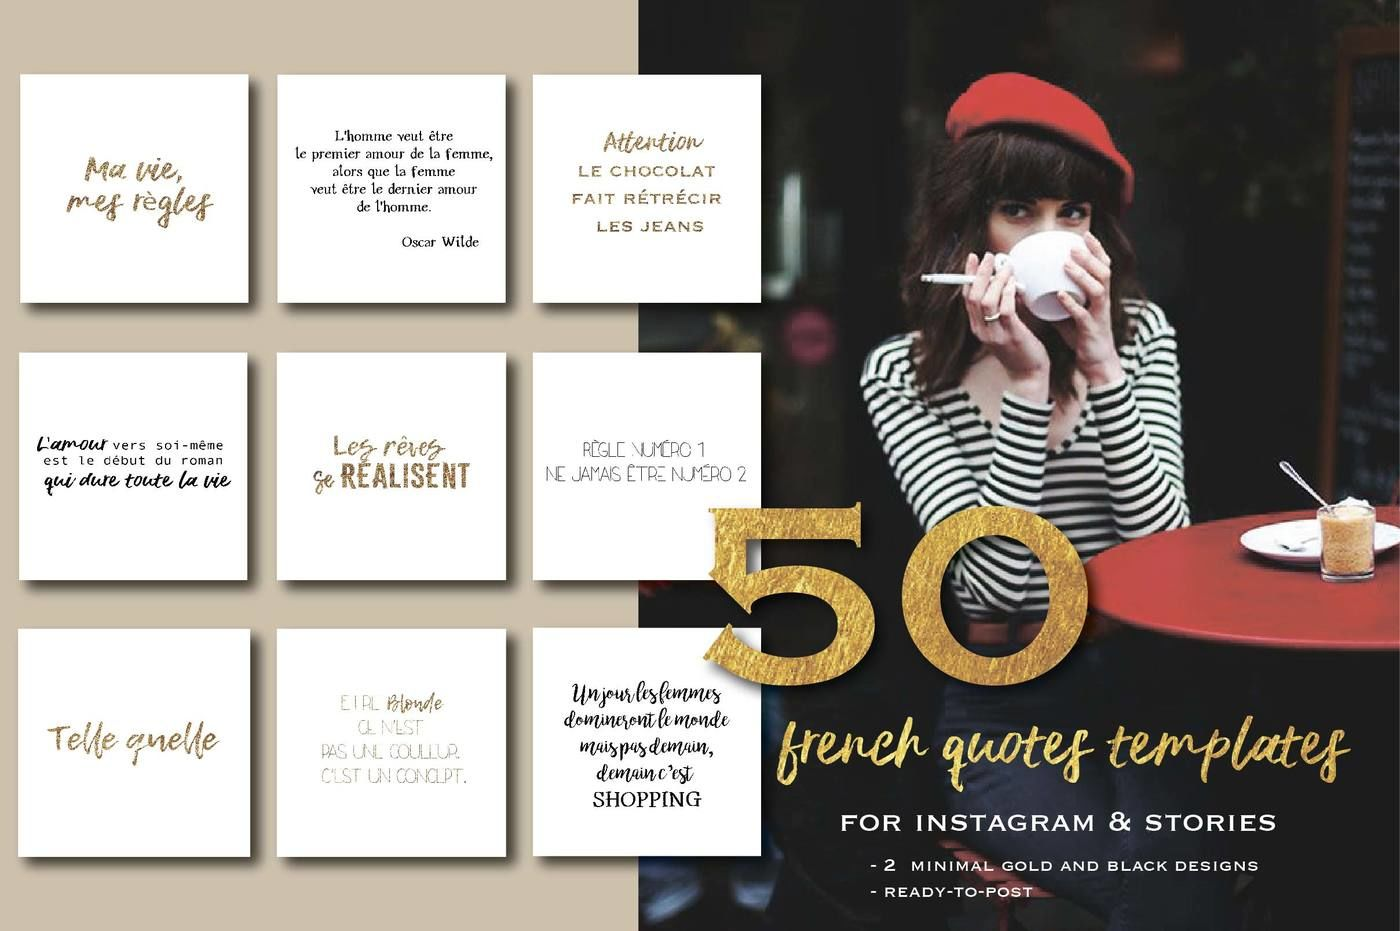 50 French Quotes For Social Media By Digital Essence